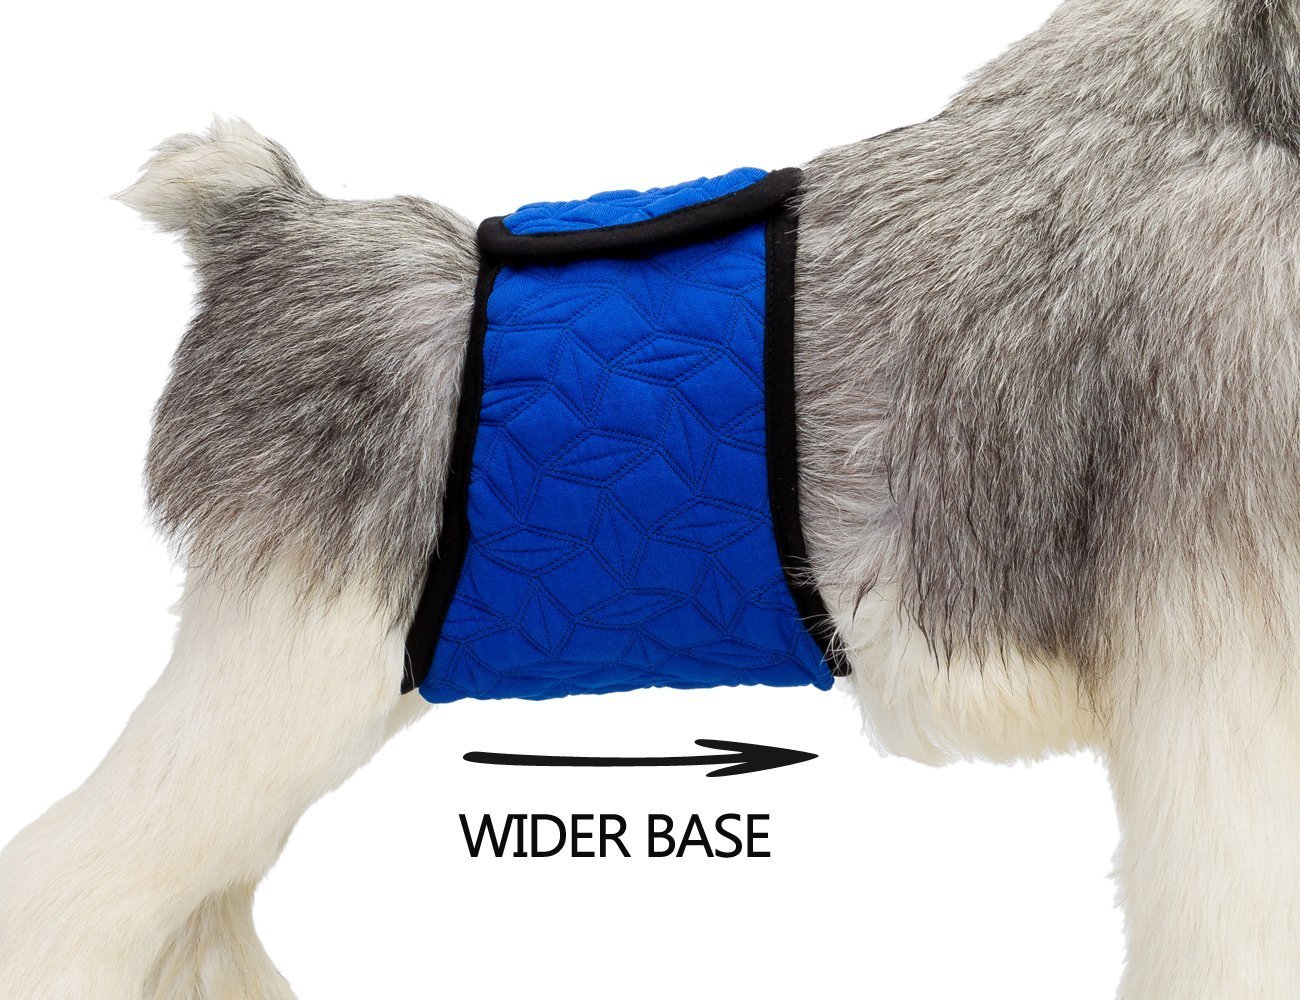 Mkouo Male Dog Belly Band Wraps Incontinence Nappies for Small and Medium Dogs